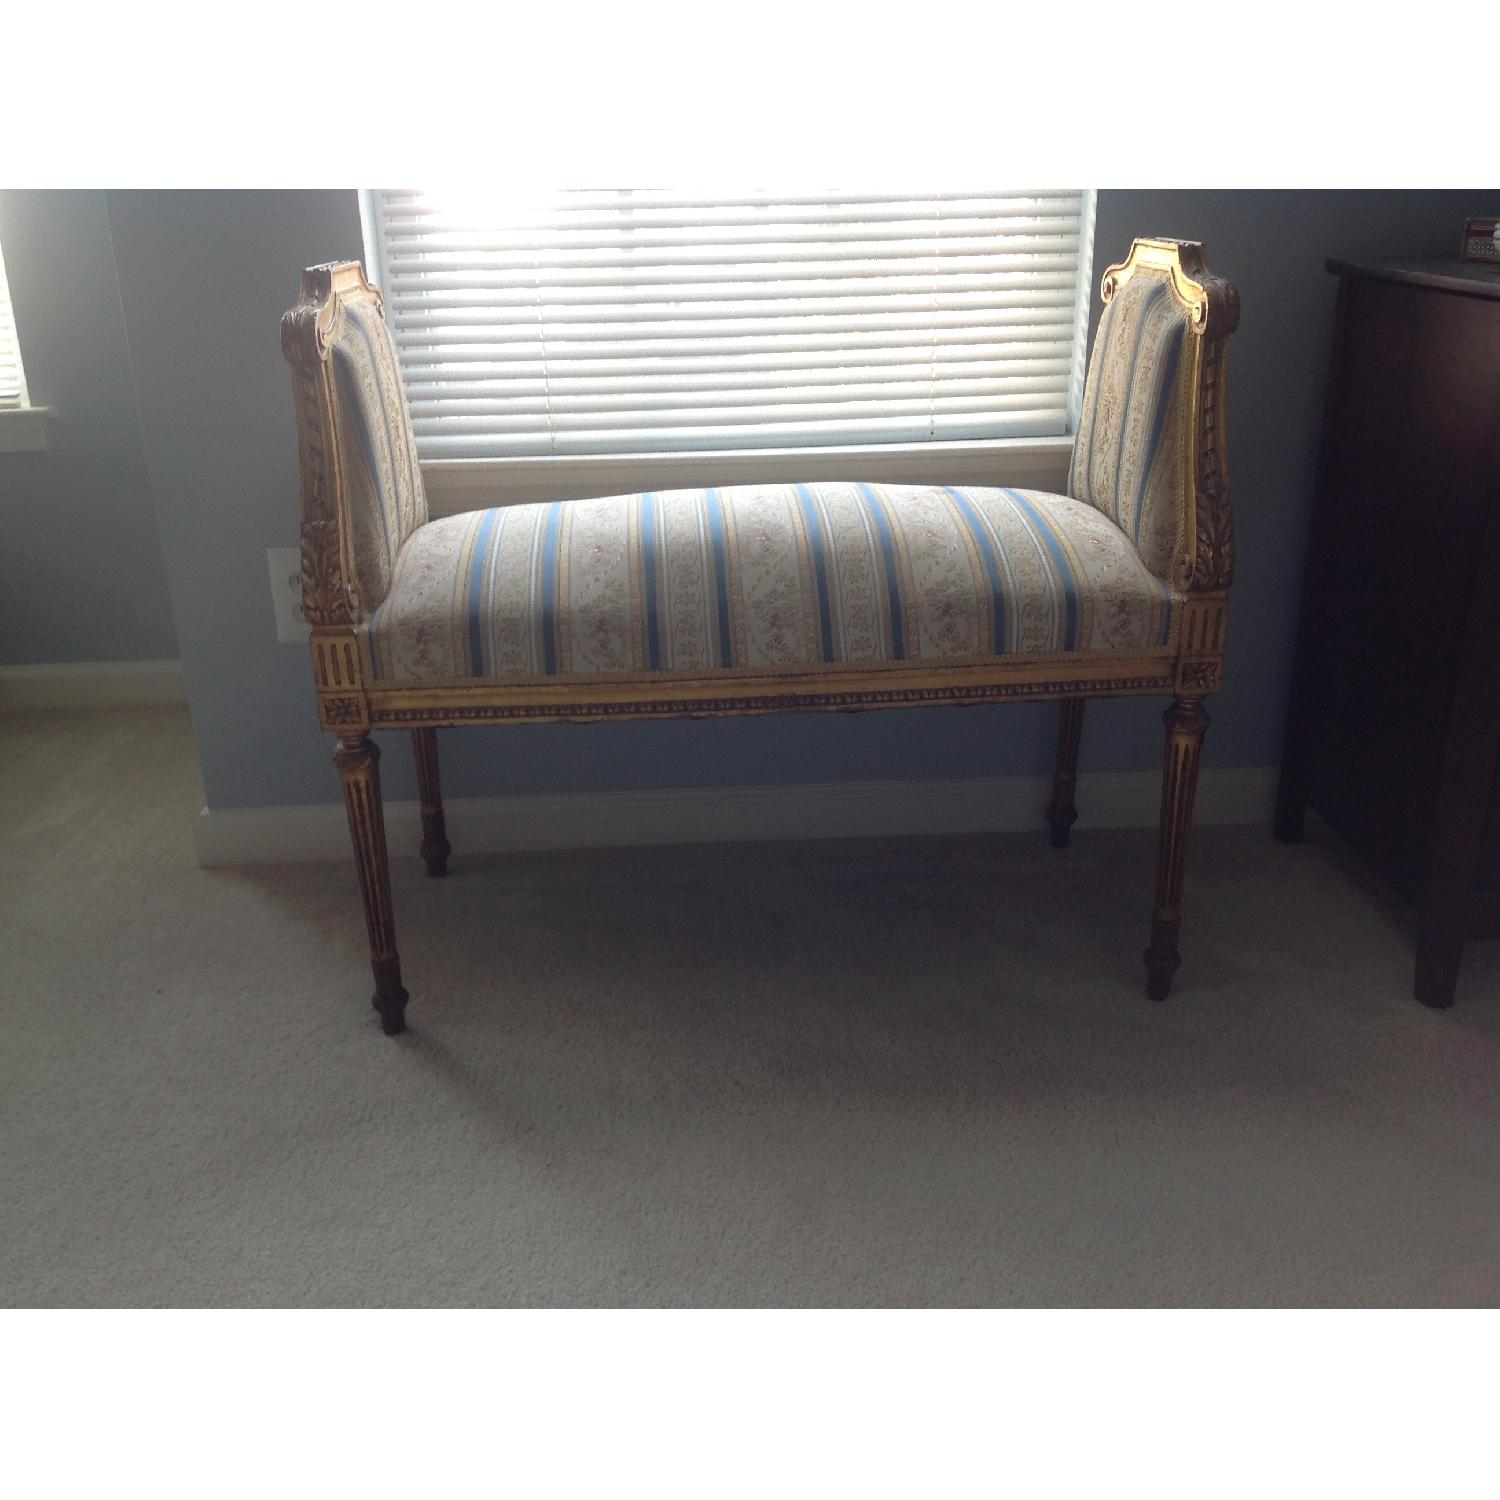 French Style Upholstered Bench-2